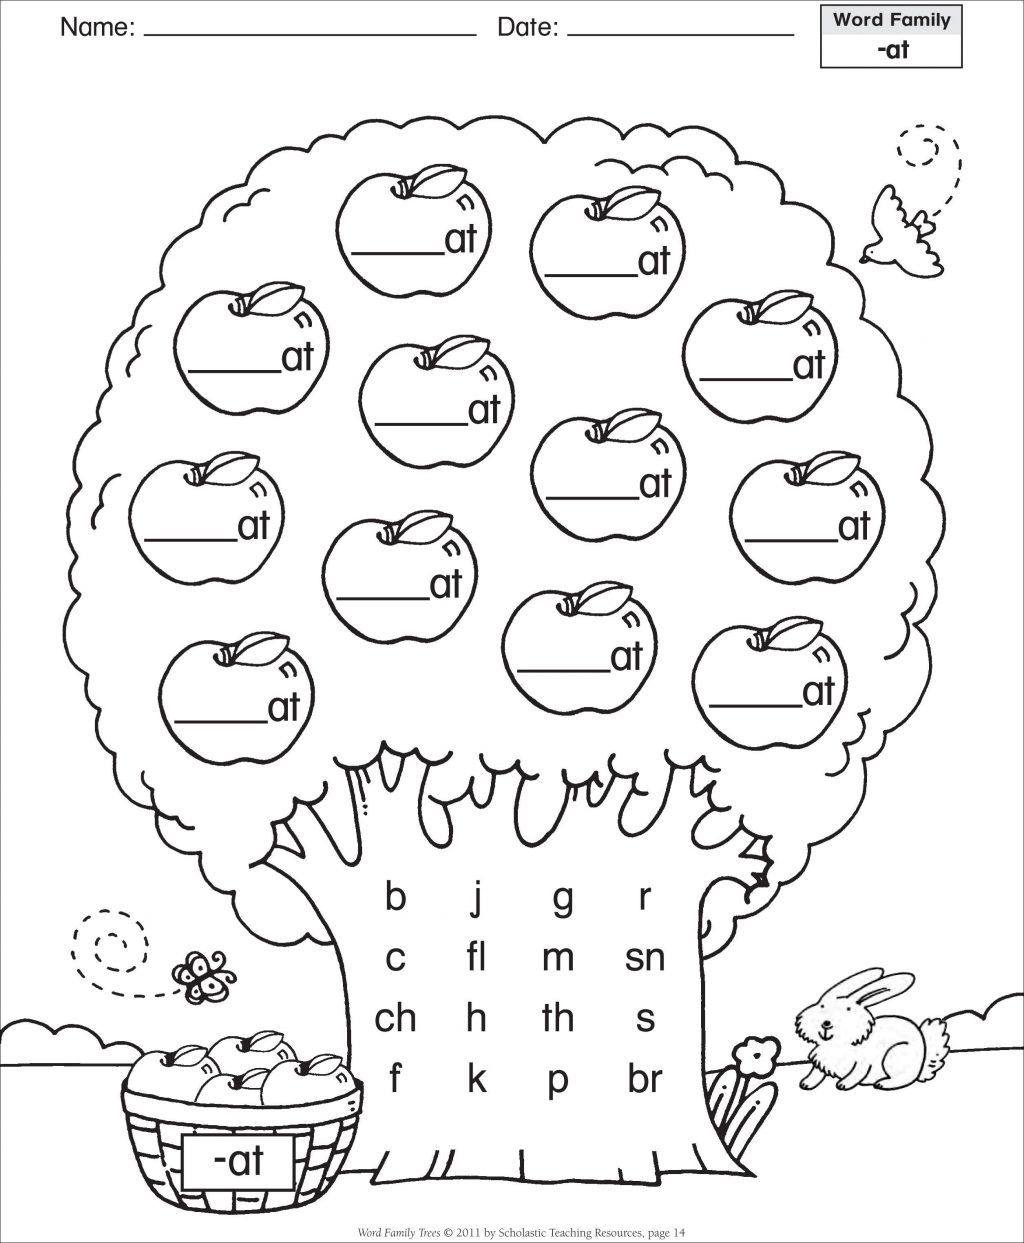 Word Family Worksheets With Pictures Beautiful Am Word Family